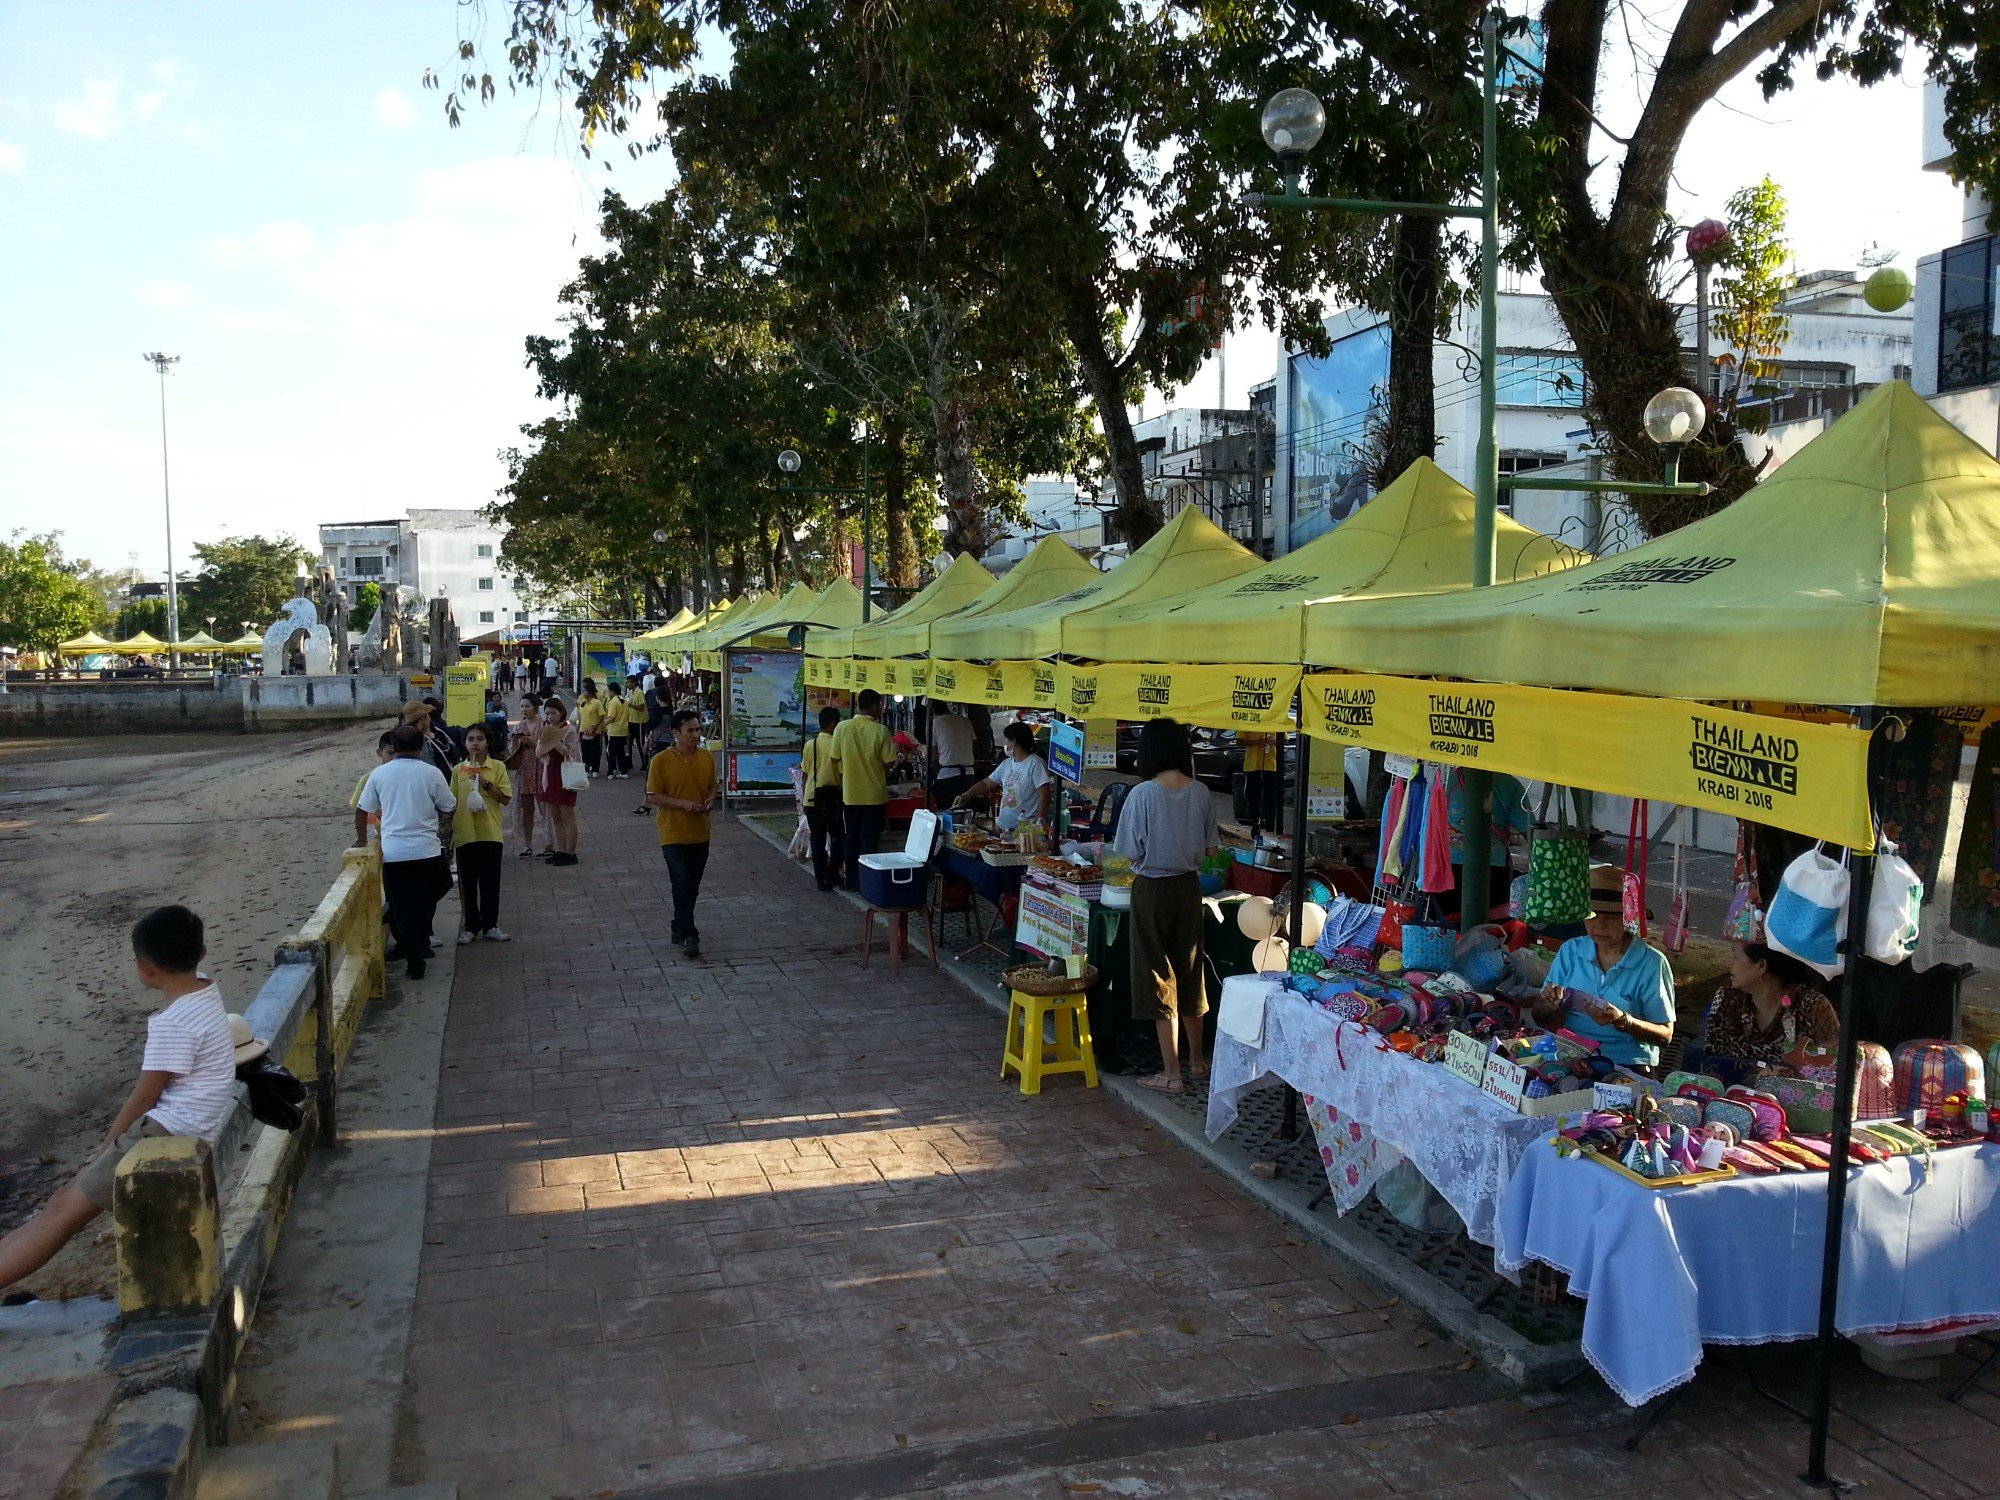 Market Stalls in Chaofa Park